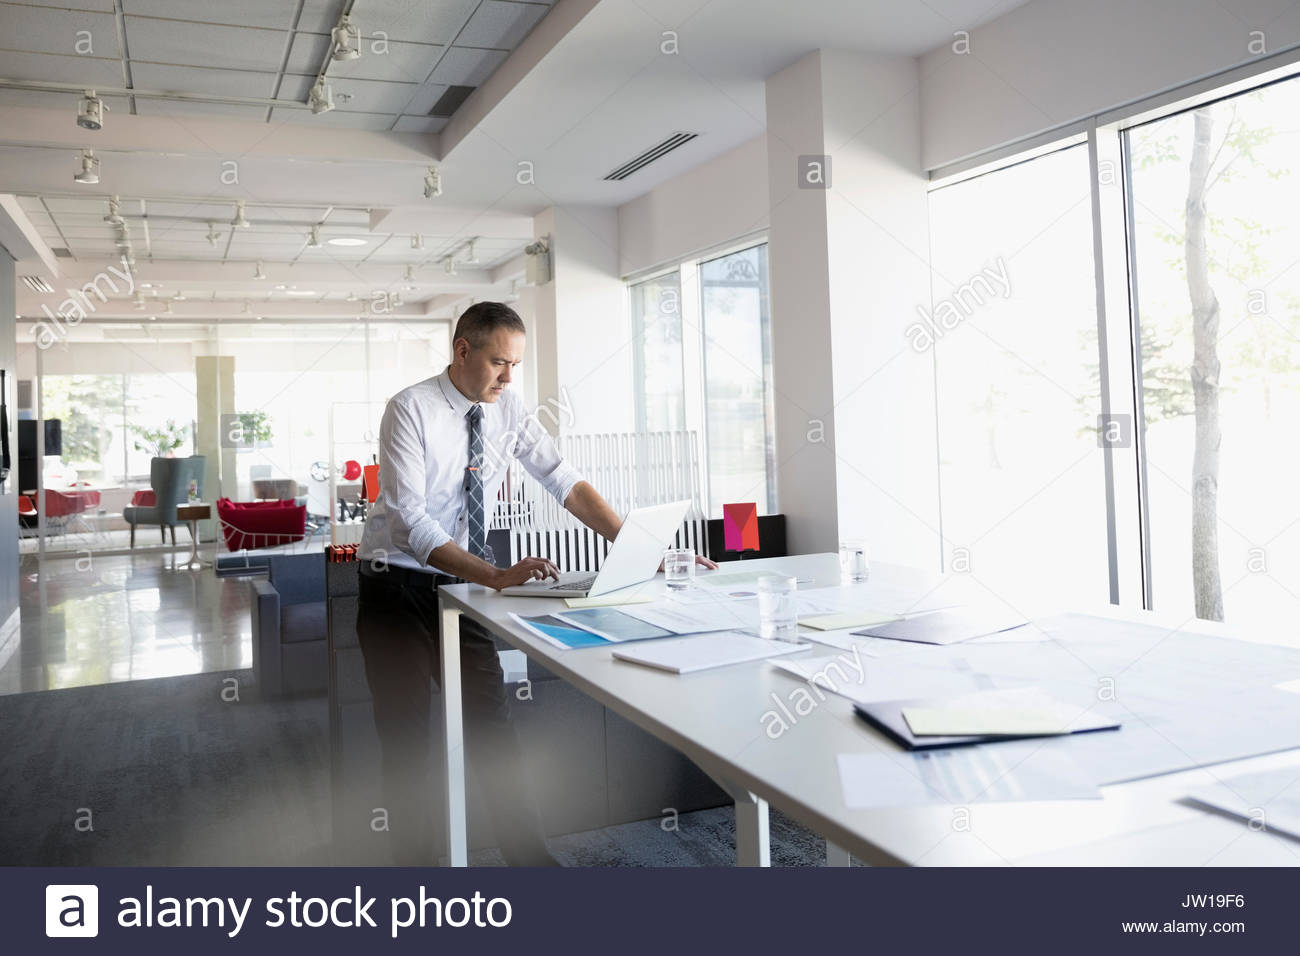 Architect working at laptop at table in open plan office Photo Stock